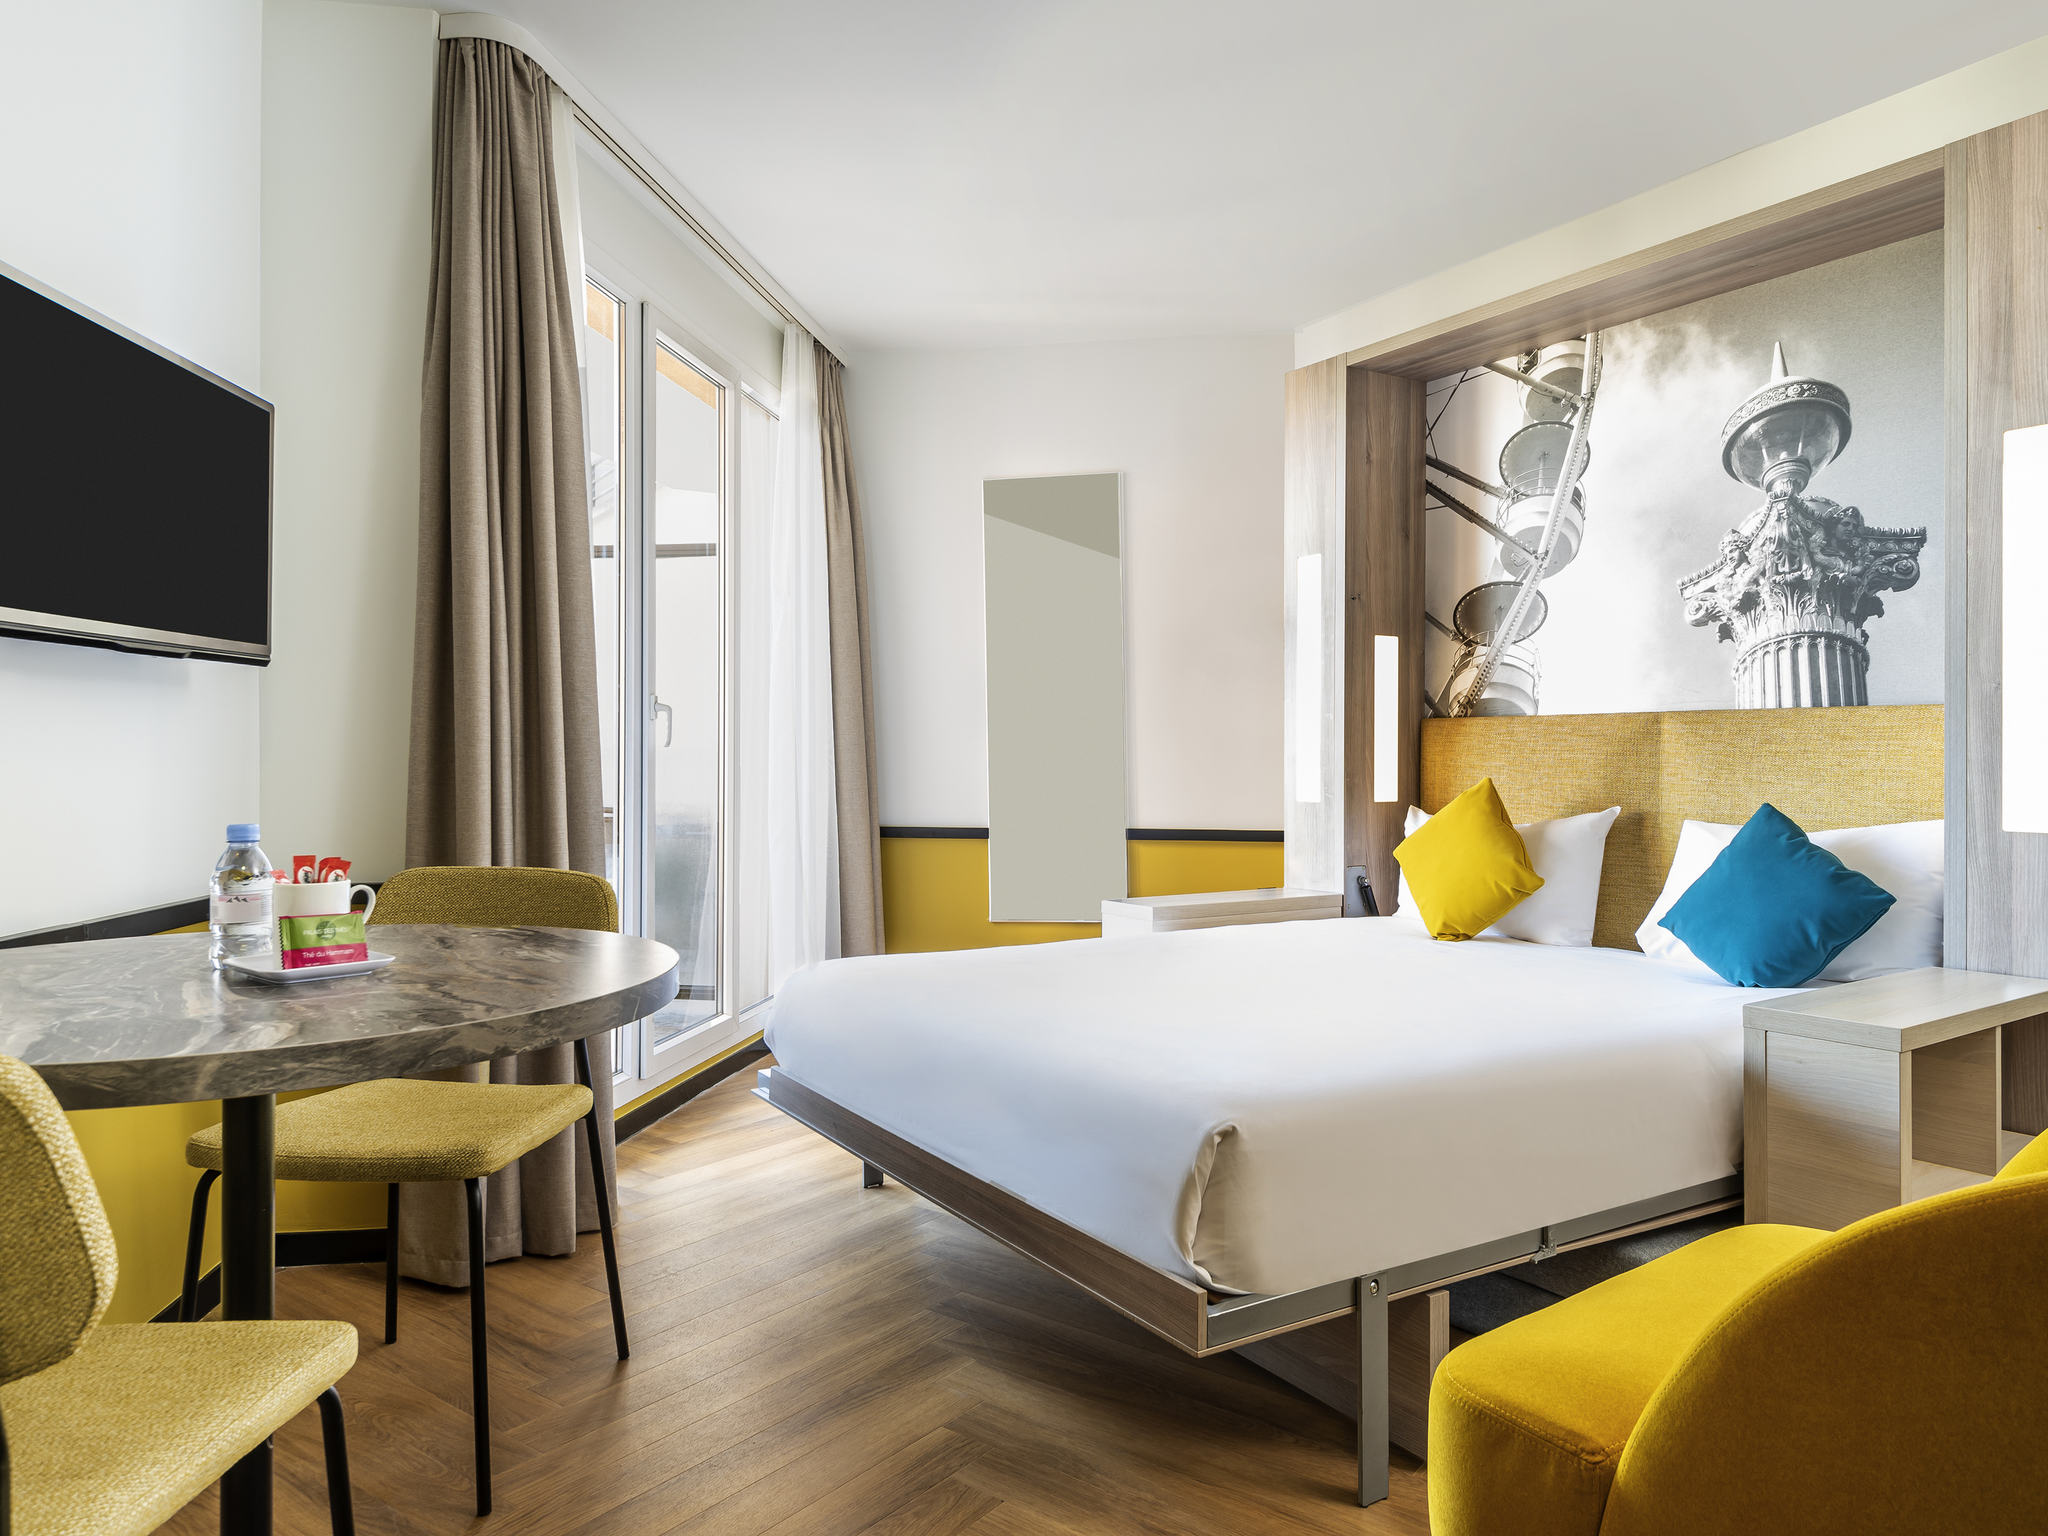 โรงแรม – Aparthotel Adagio Paris Montrouge